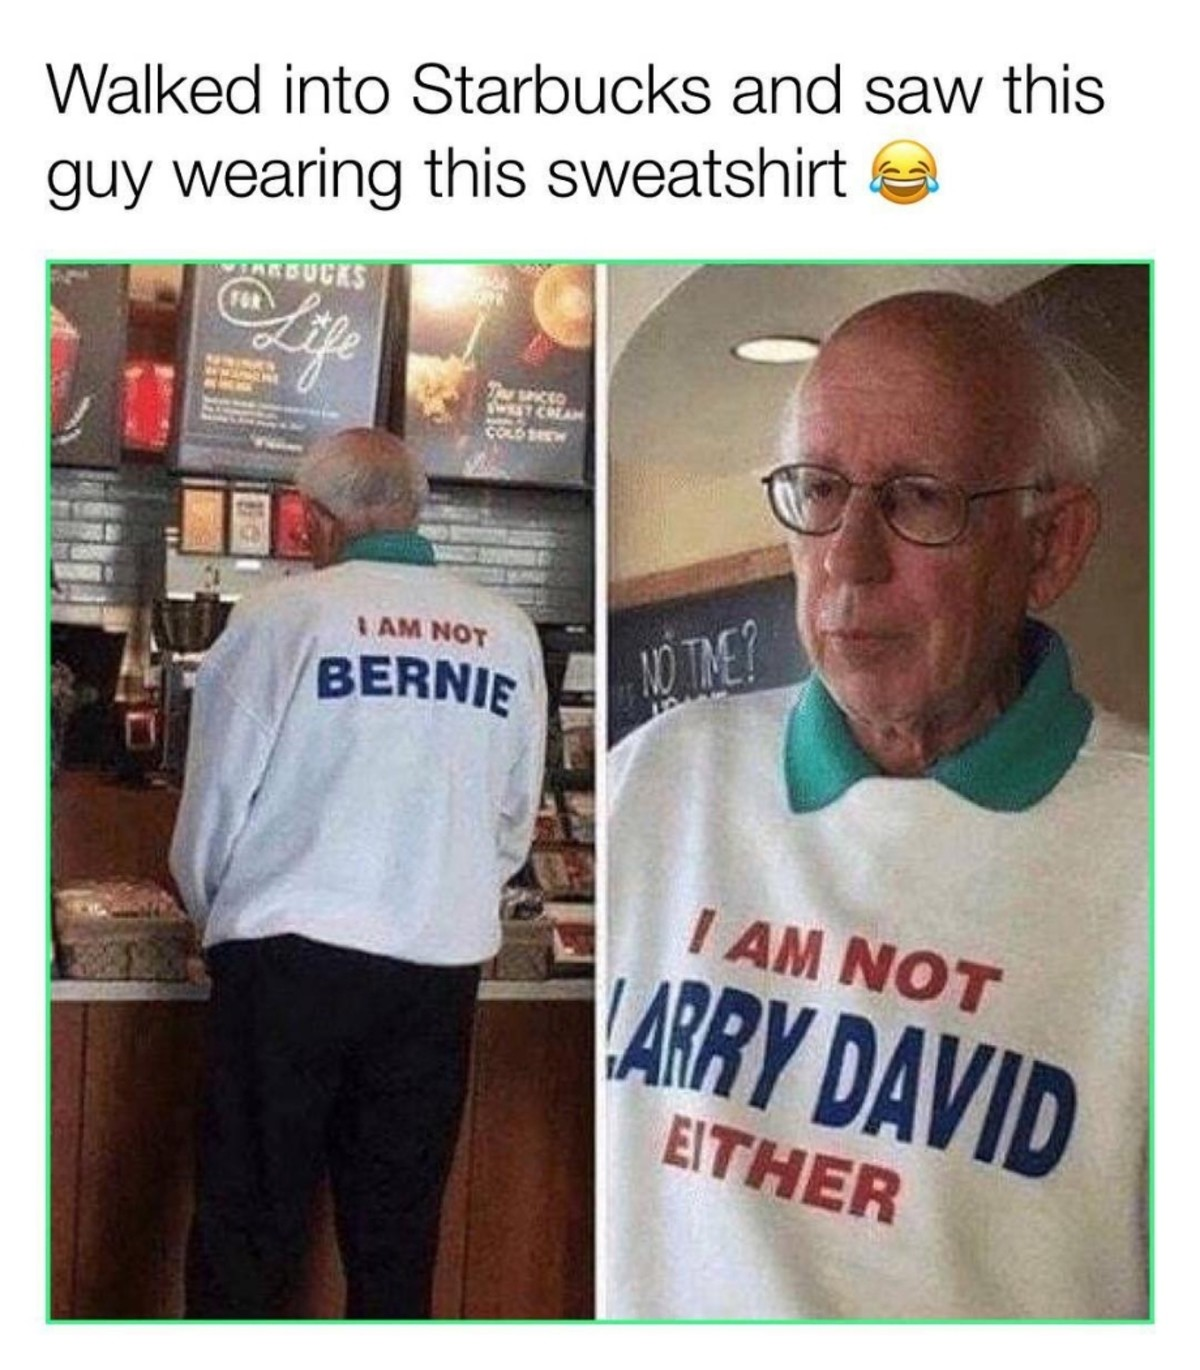 addicted taboo Trout. .. I would completely expect Larry David to go around in public wearing that shirt.